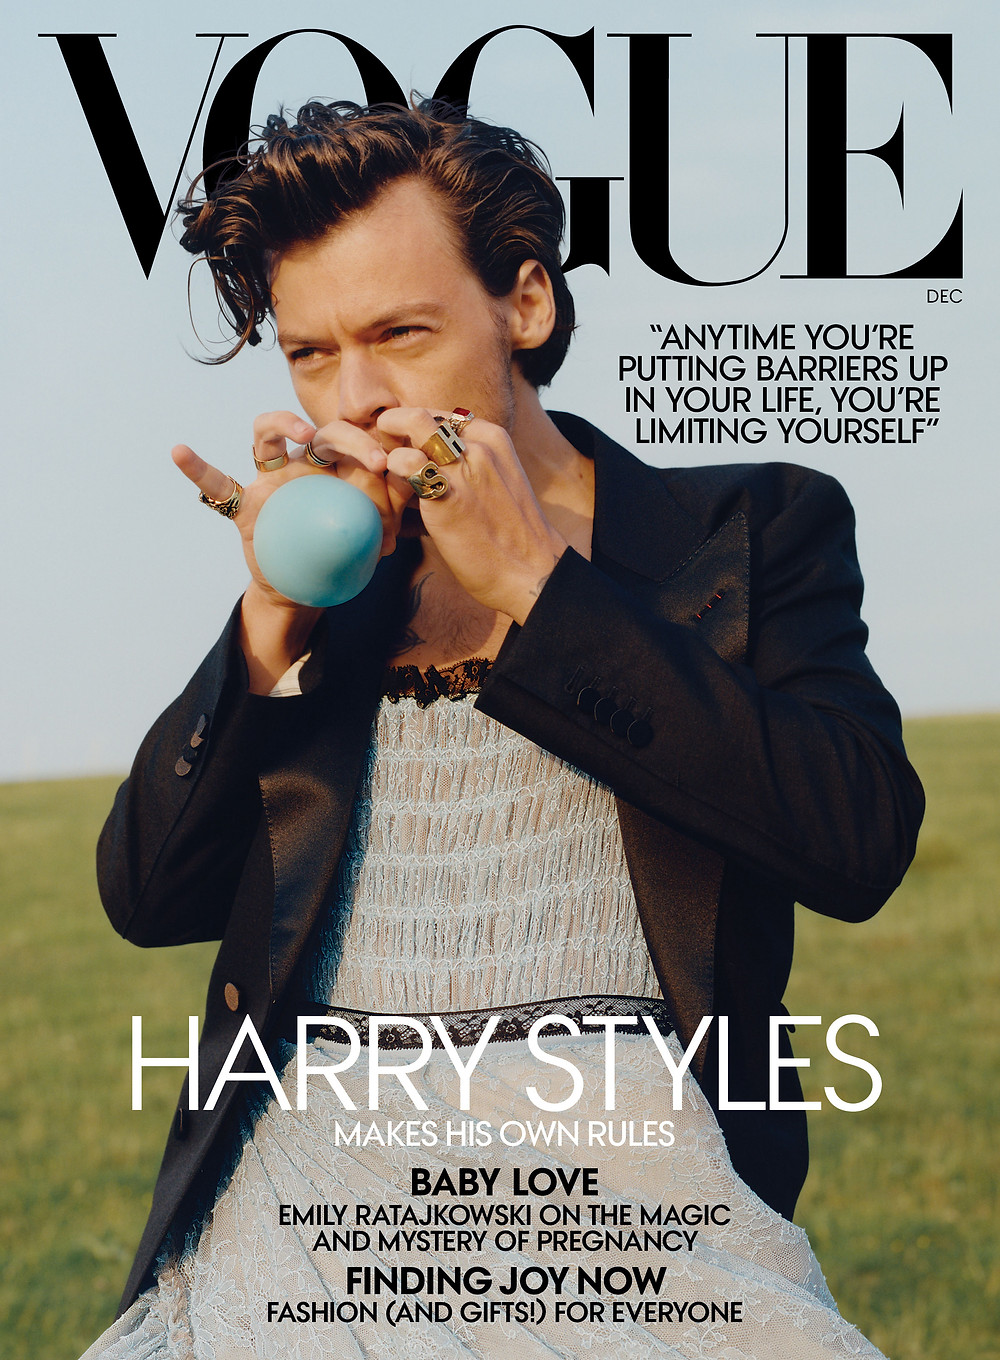 Harry Styles becomes Vogue's first-ever solo male cover star - CNN Style